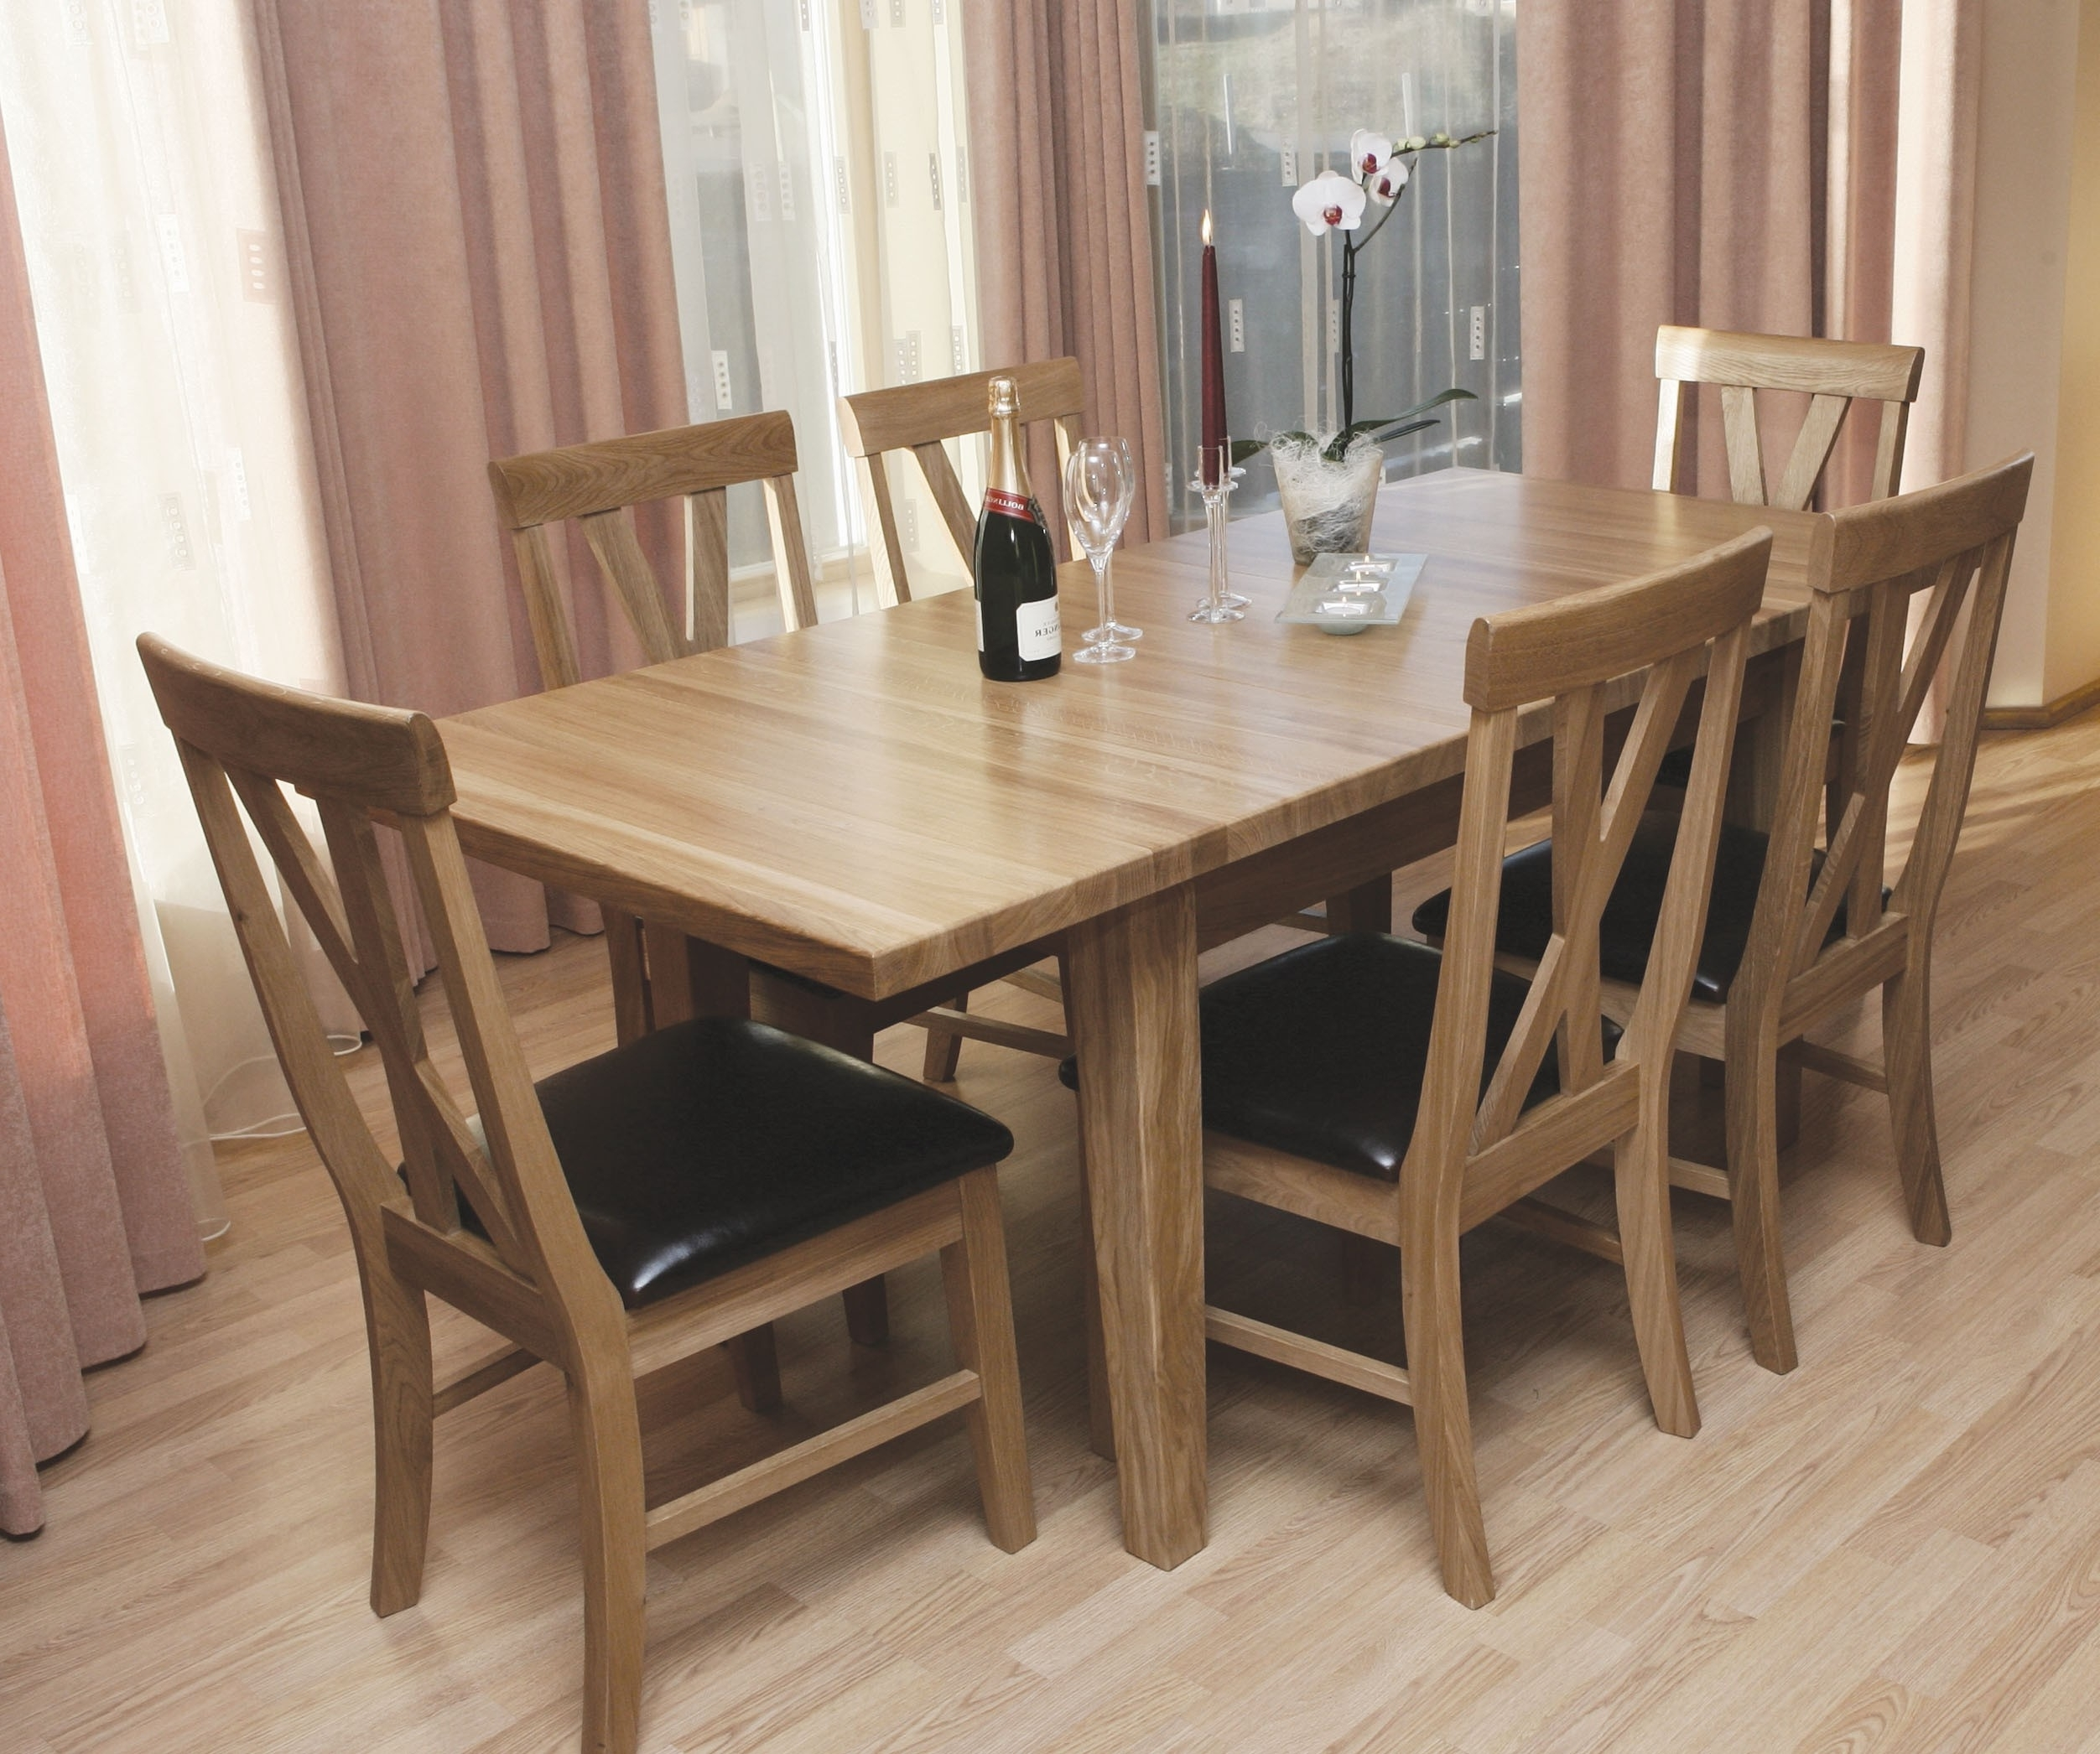 6 Seat Dining Tables For 2018 Tch Warwick 6 Seat Dining Table & Chairs Set Solid Oak – Furniture (Gallery 1 of 25)